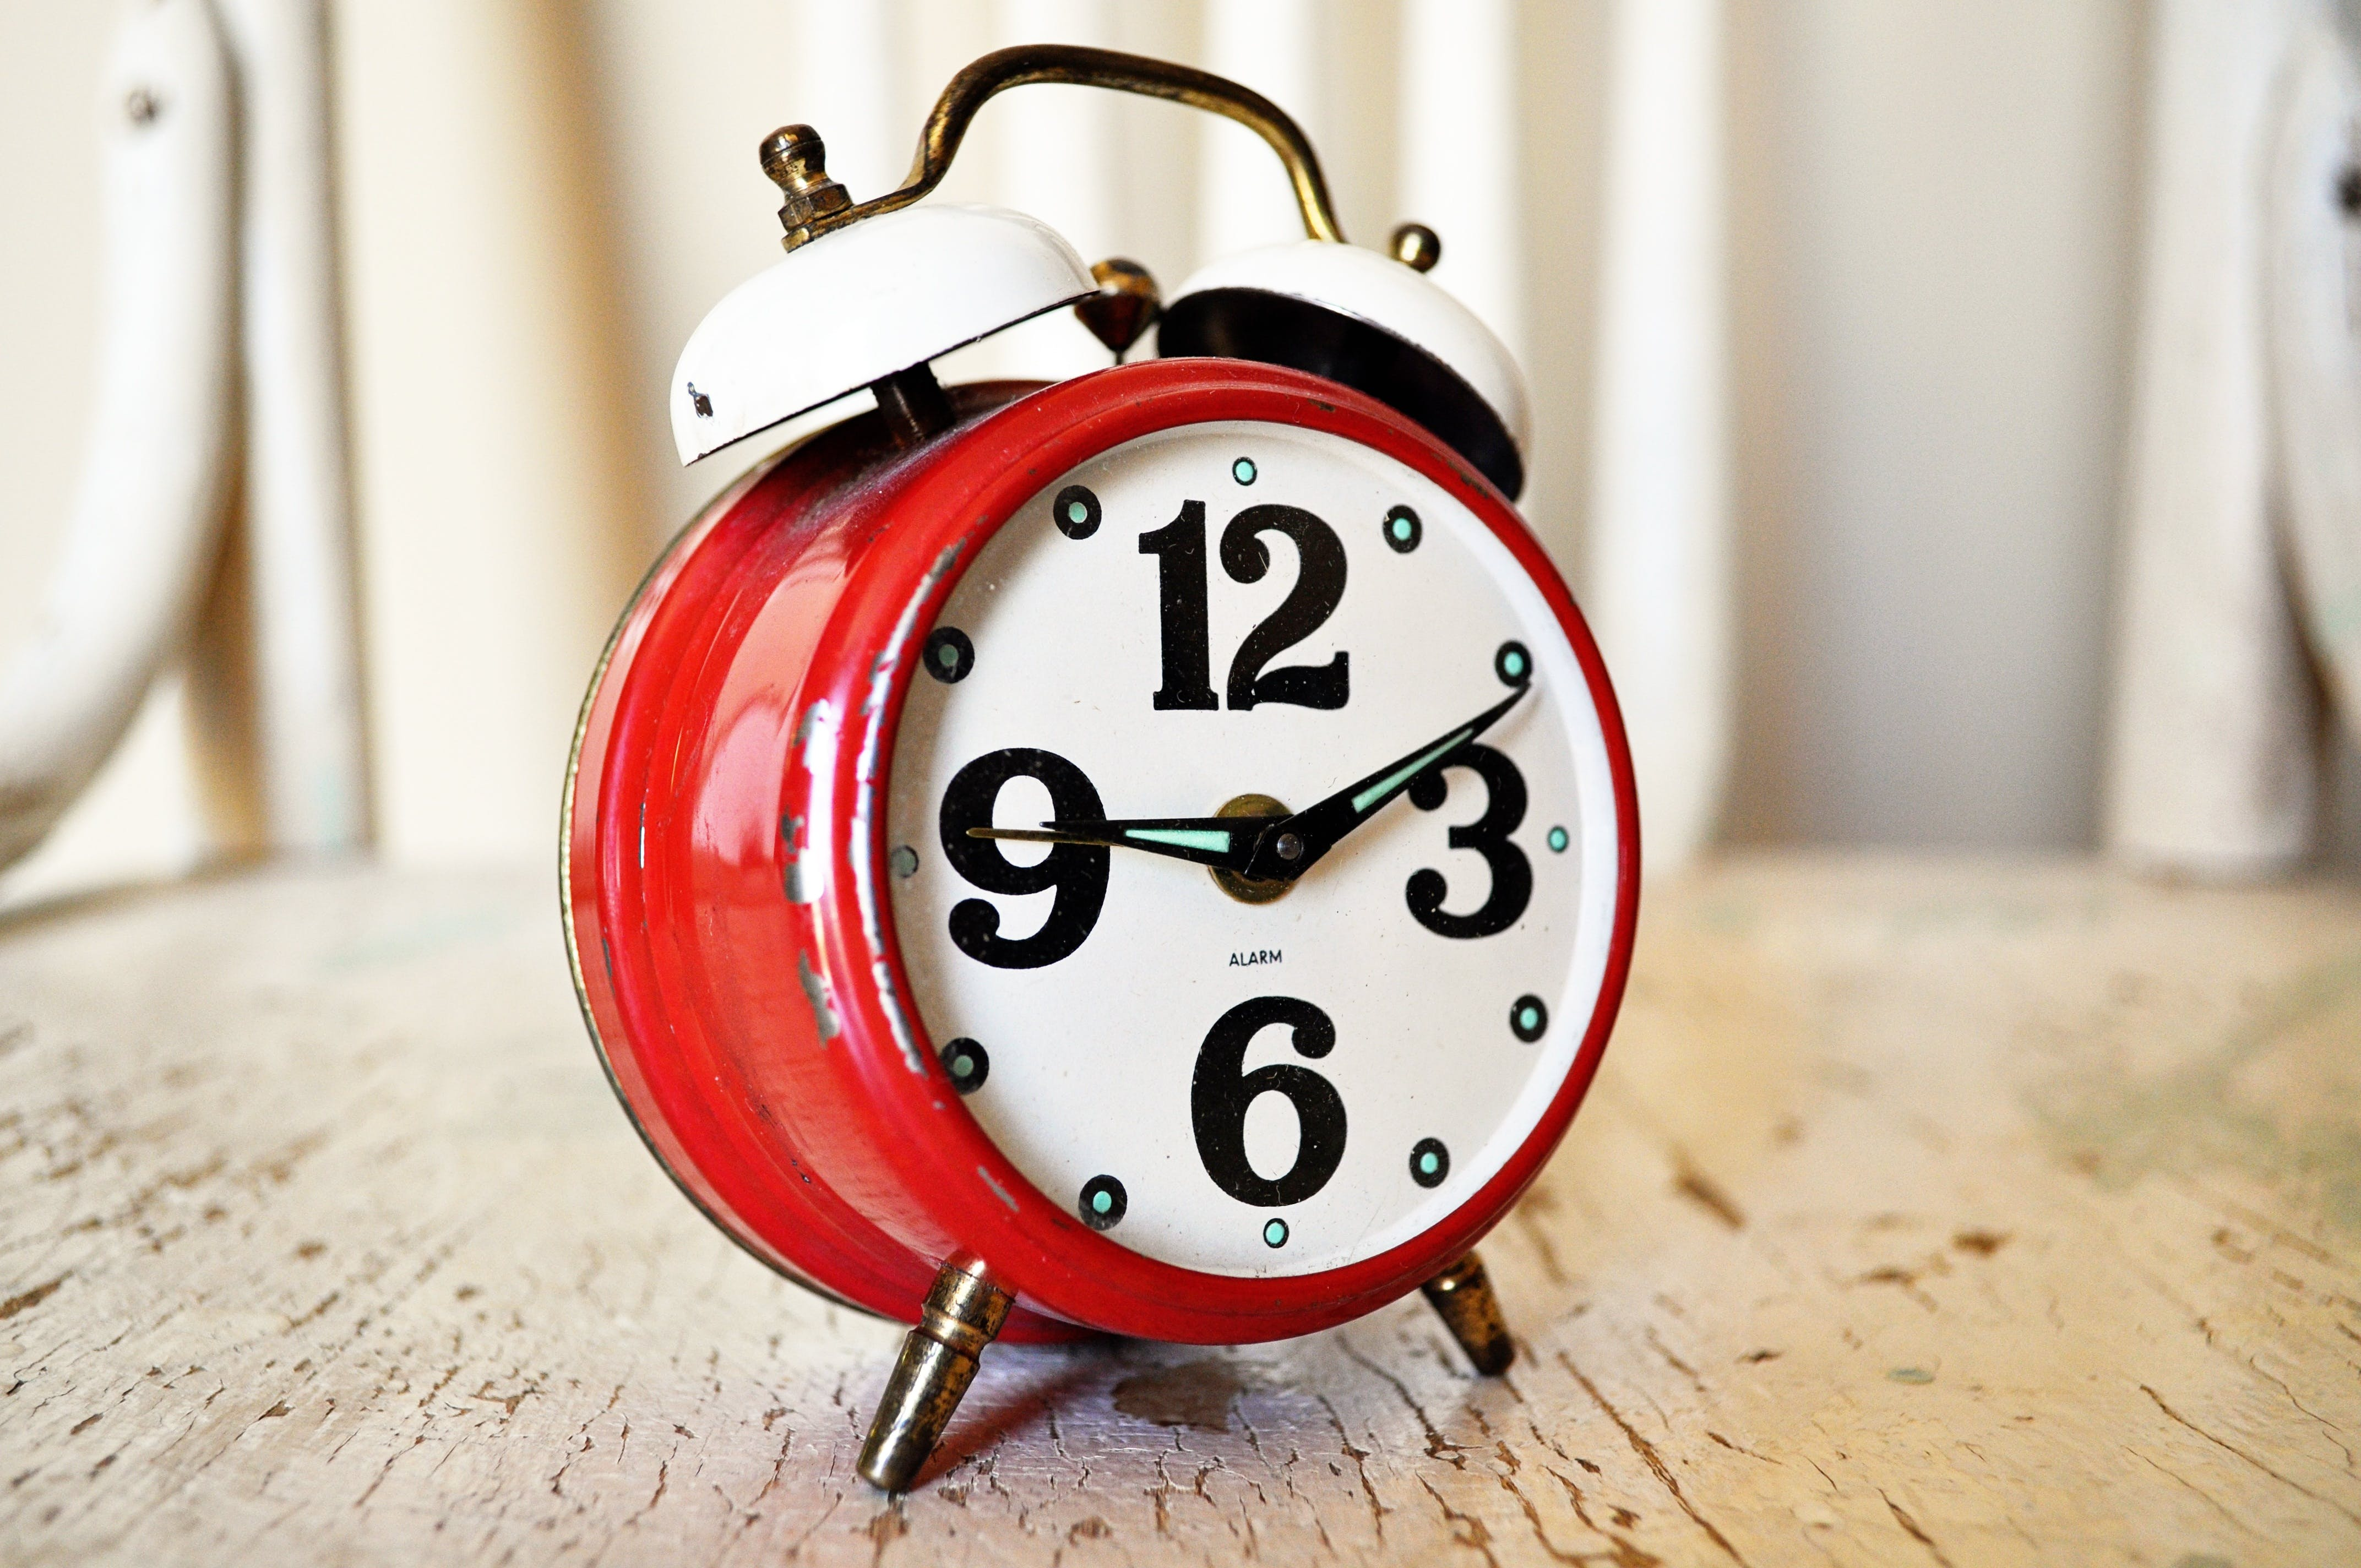 Red and White Alarm Clock Displaying 9:11